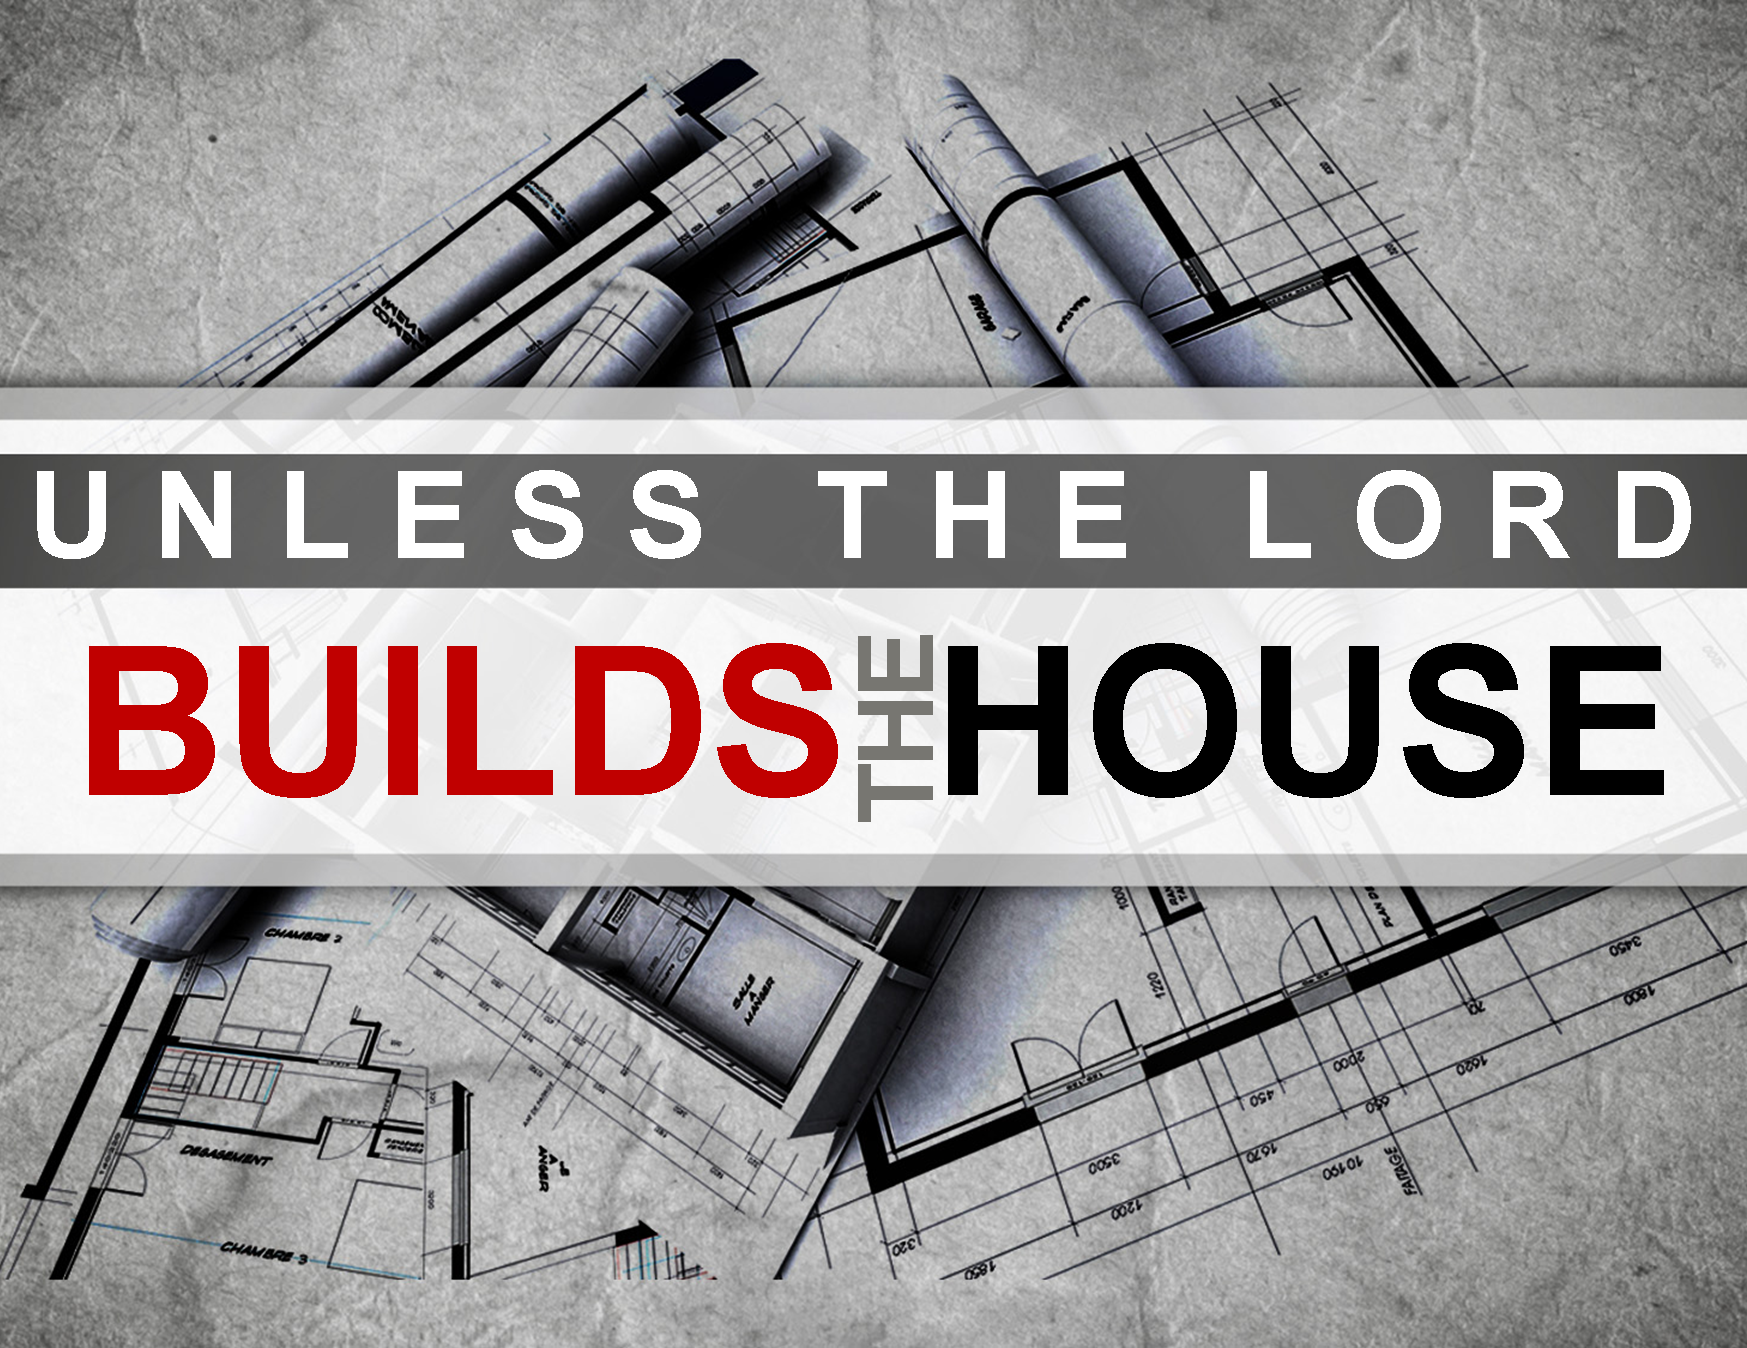 """"""" Unless the Lord builds the house, those who build it labor in vain .""""  Psalm 127:1"""